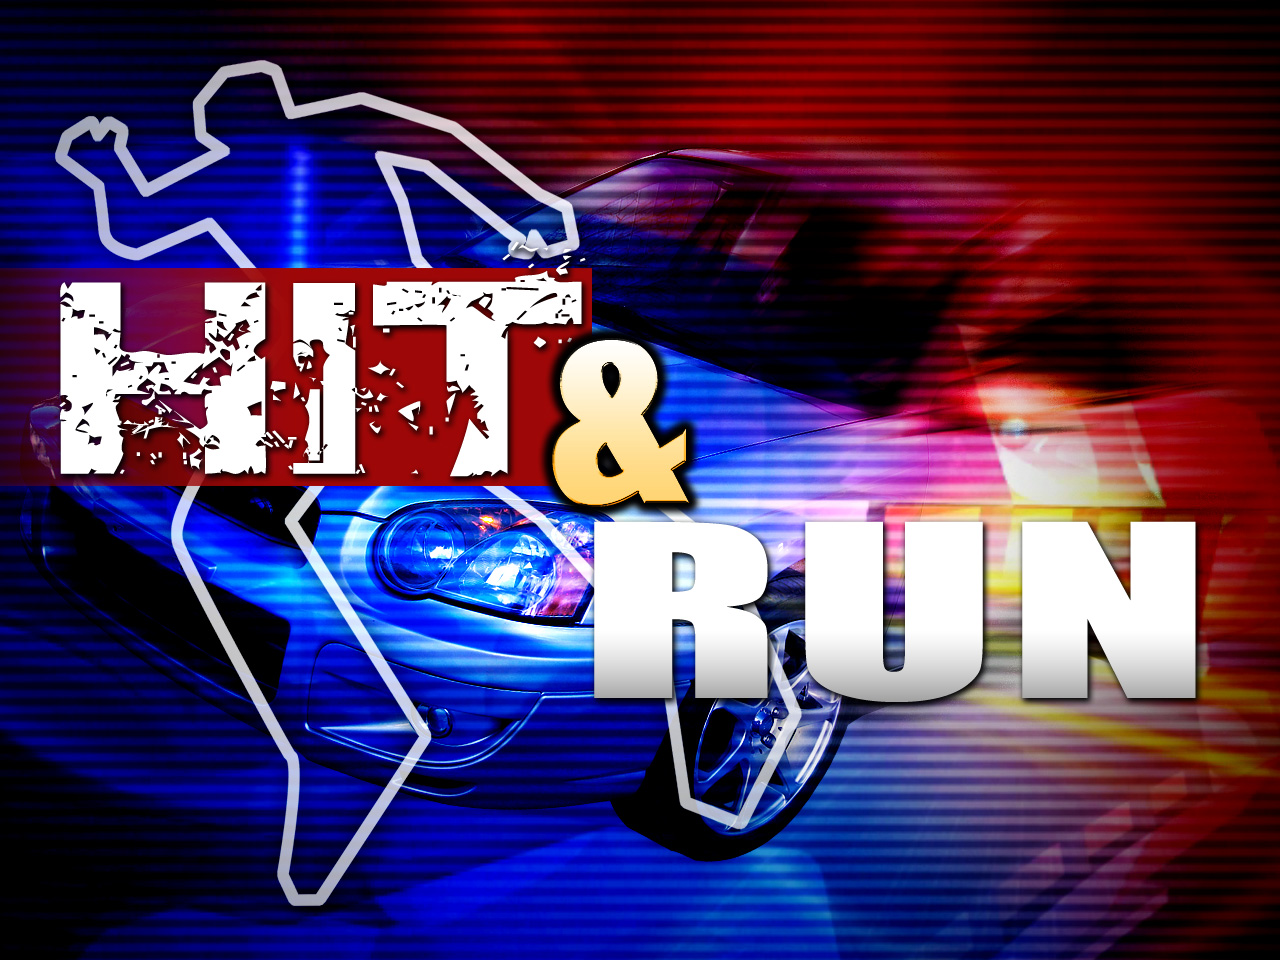 Ocala Post - FHP: Fatal hit-and-run, public assistance needed immediately